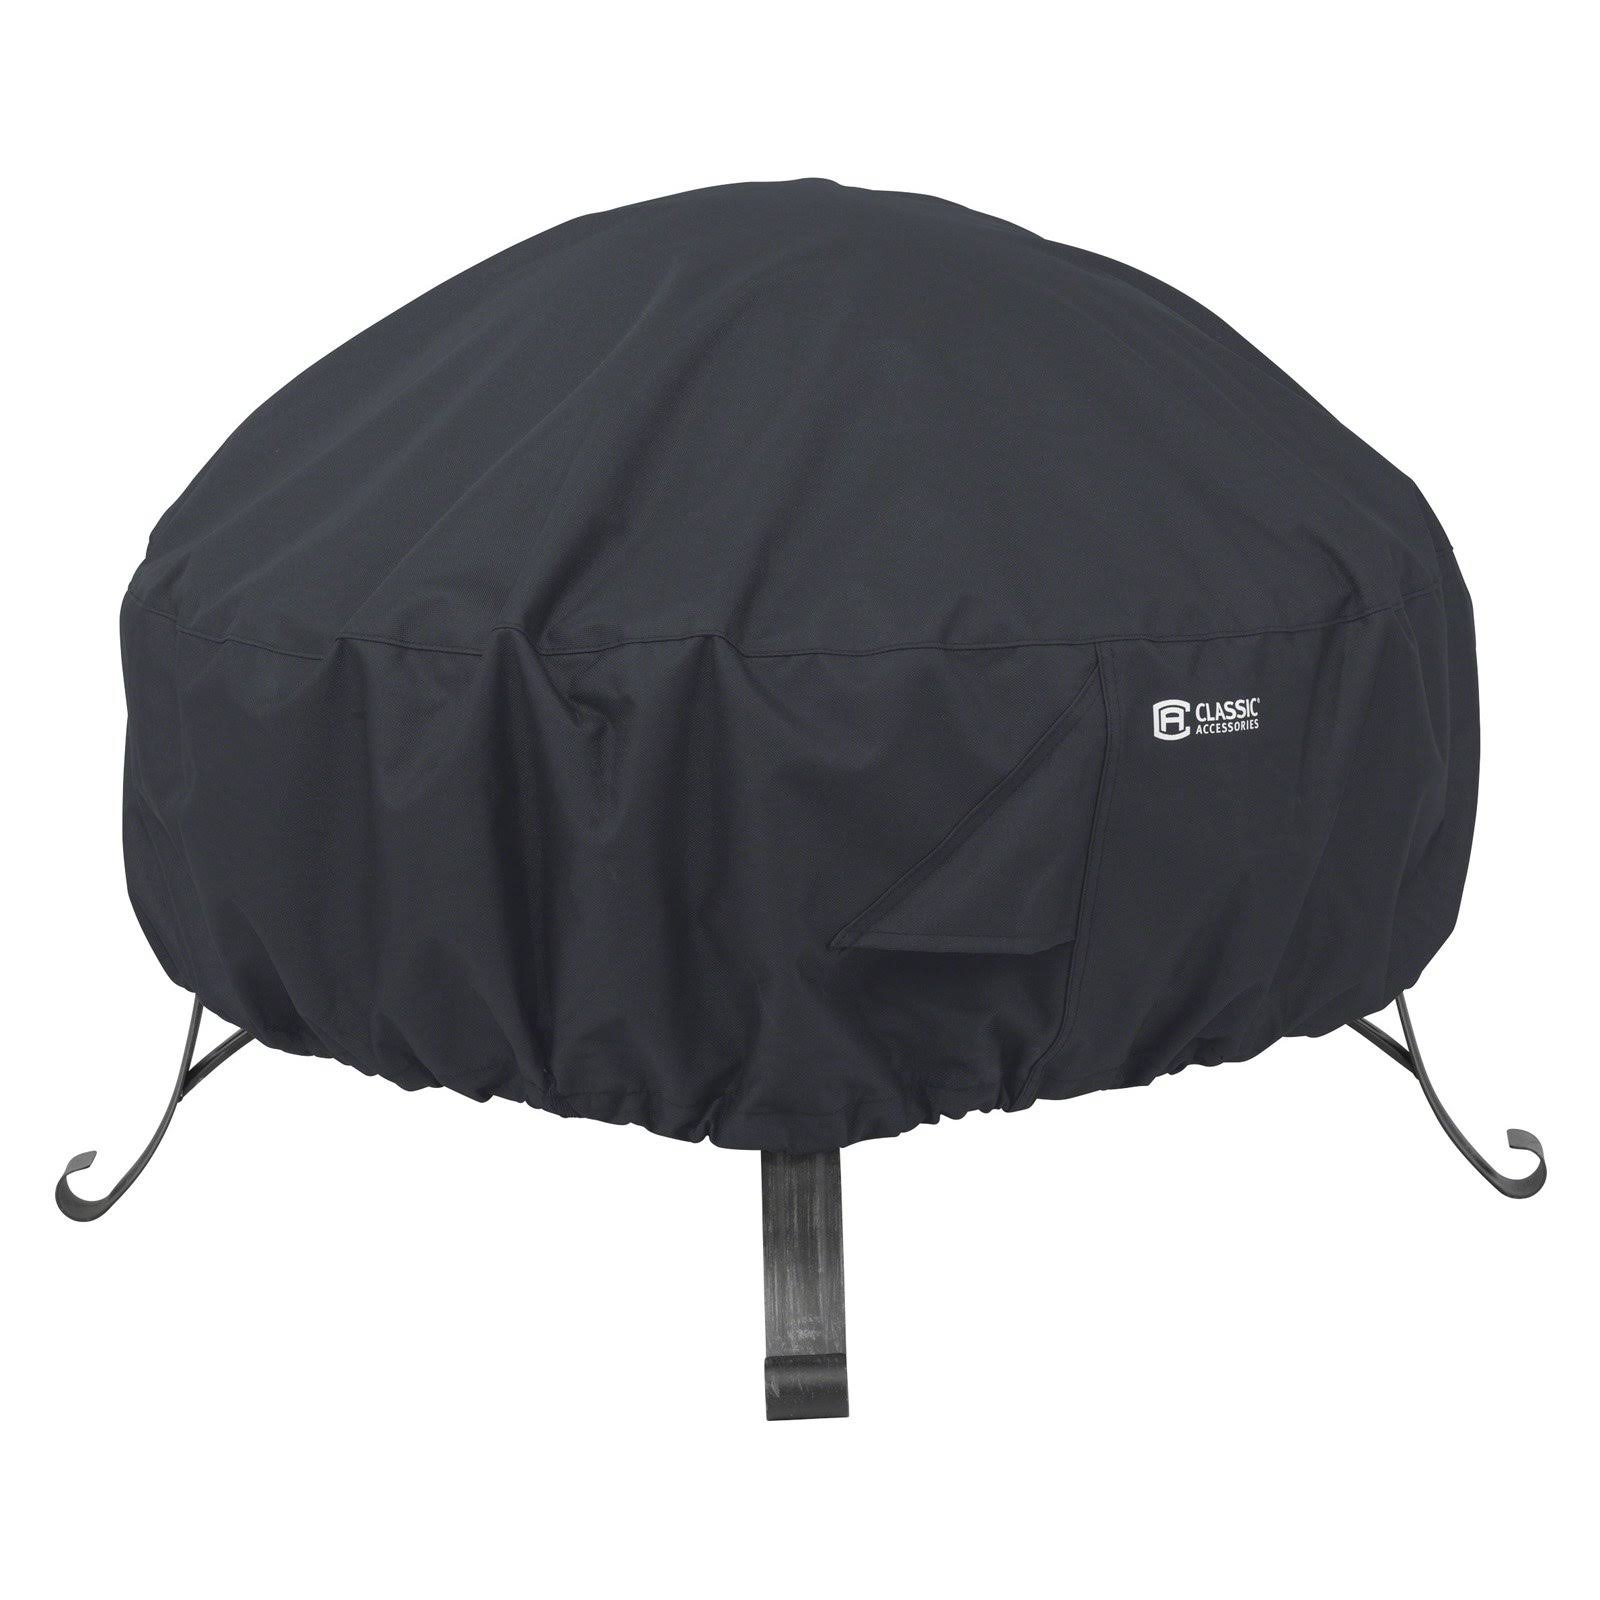 Classic Accessories Round Fire Pit Cover - Black, 36""